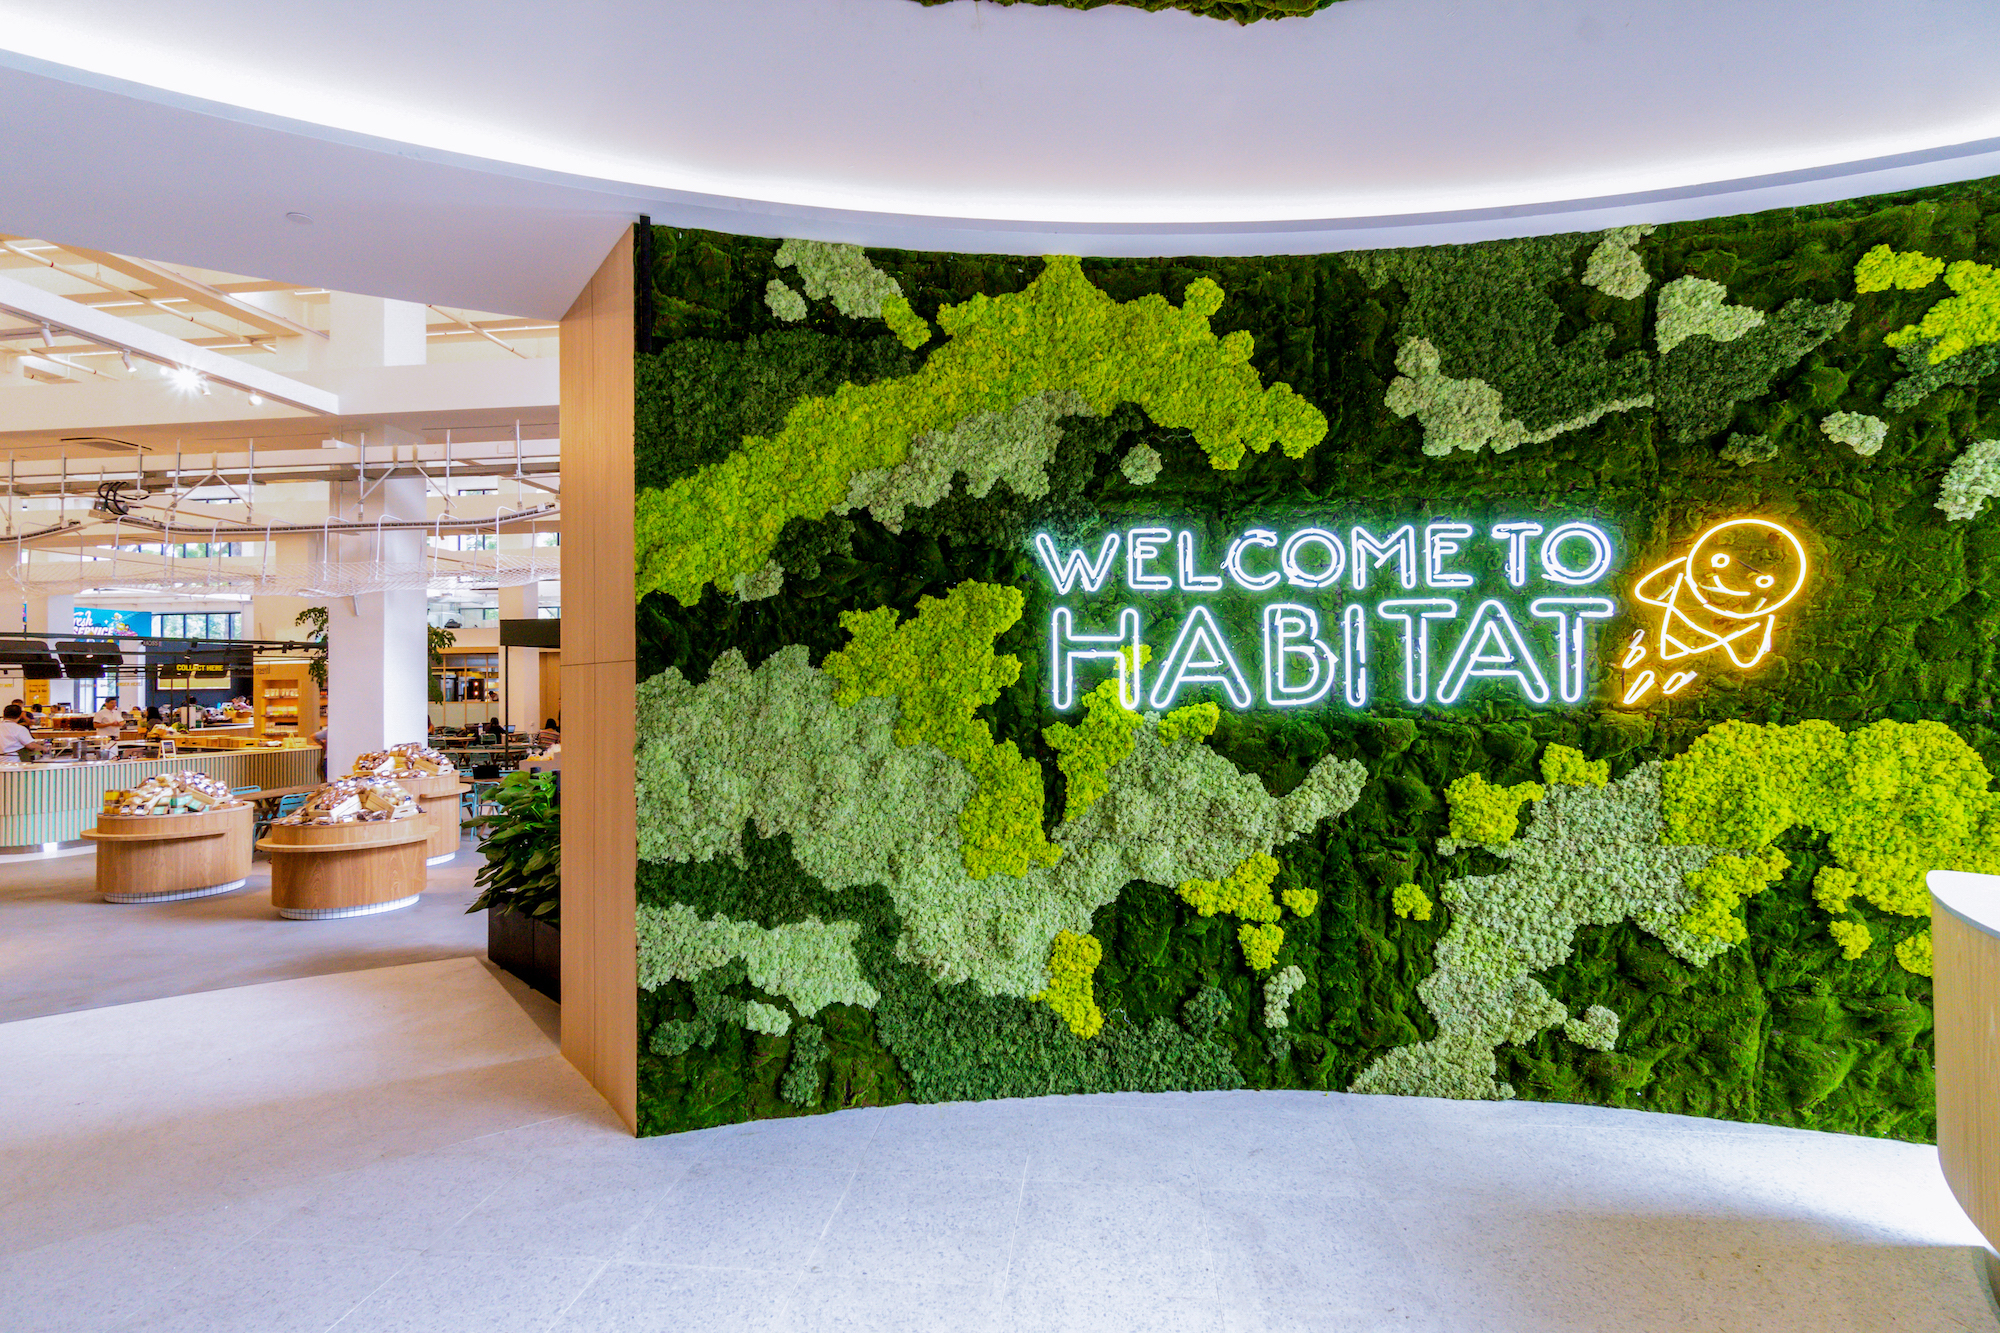 habitat by honestbee